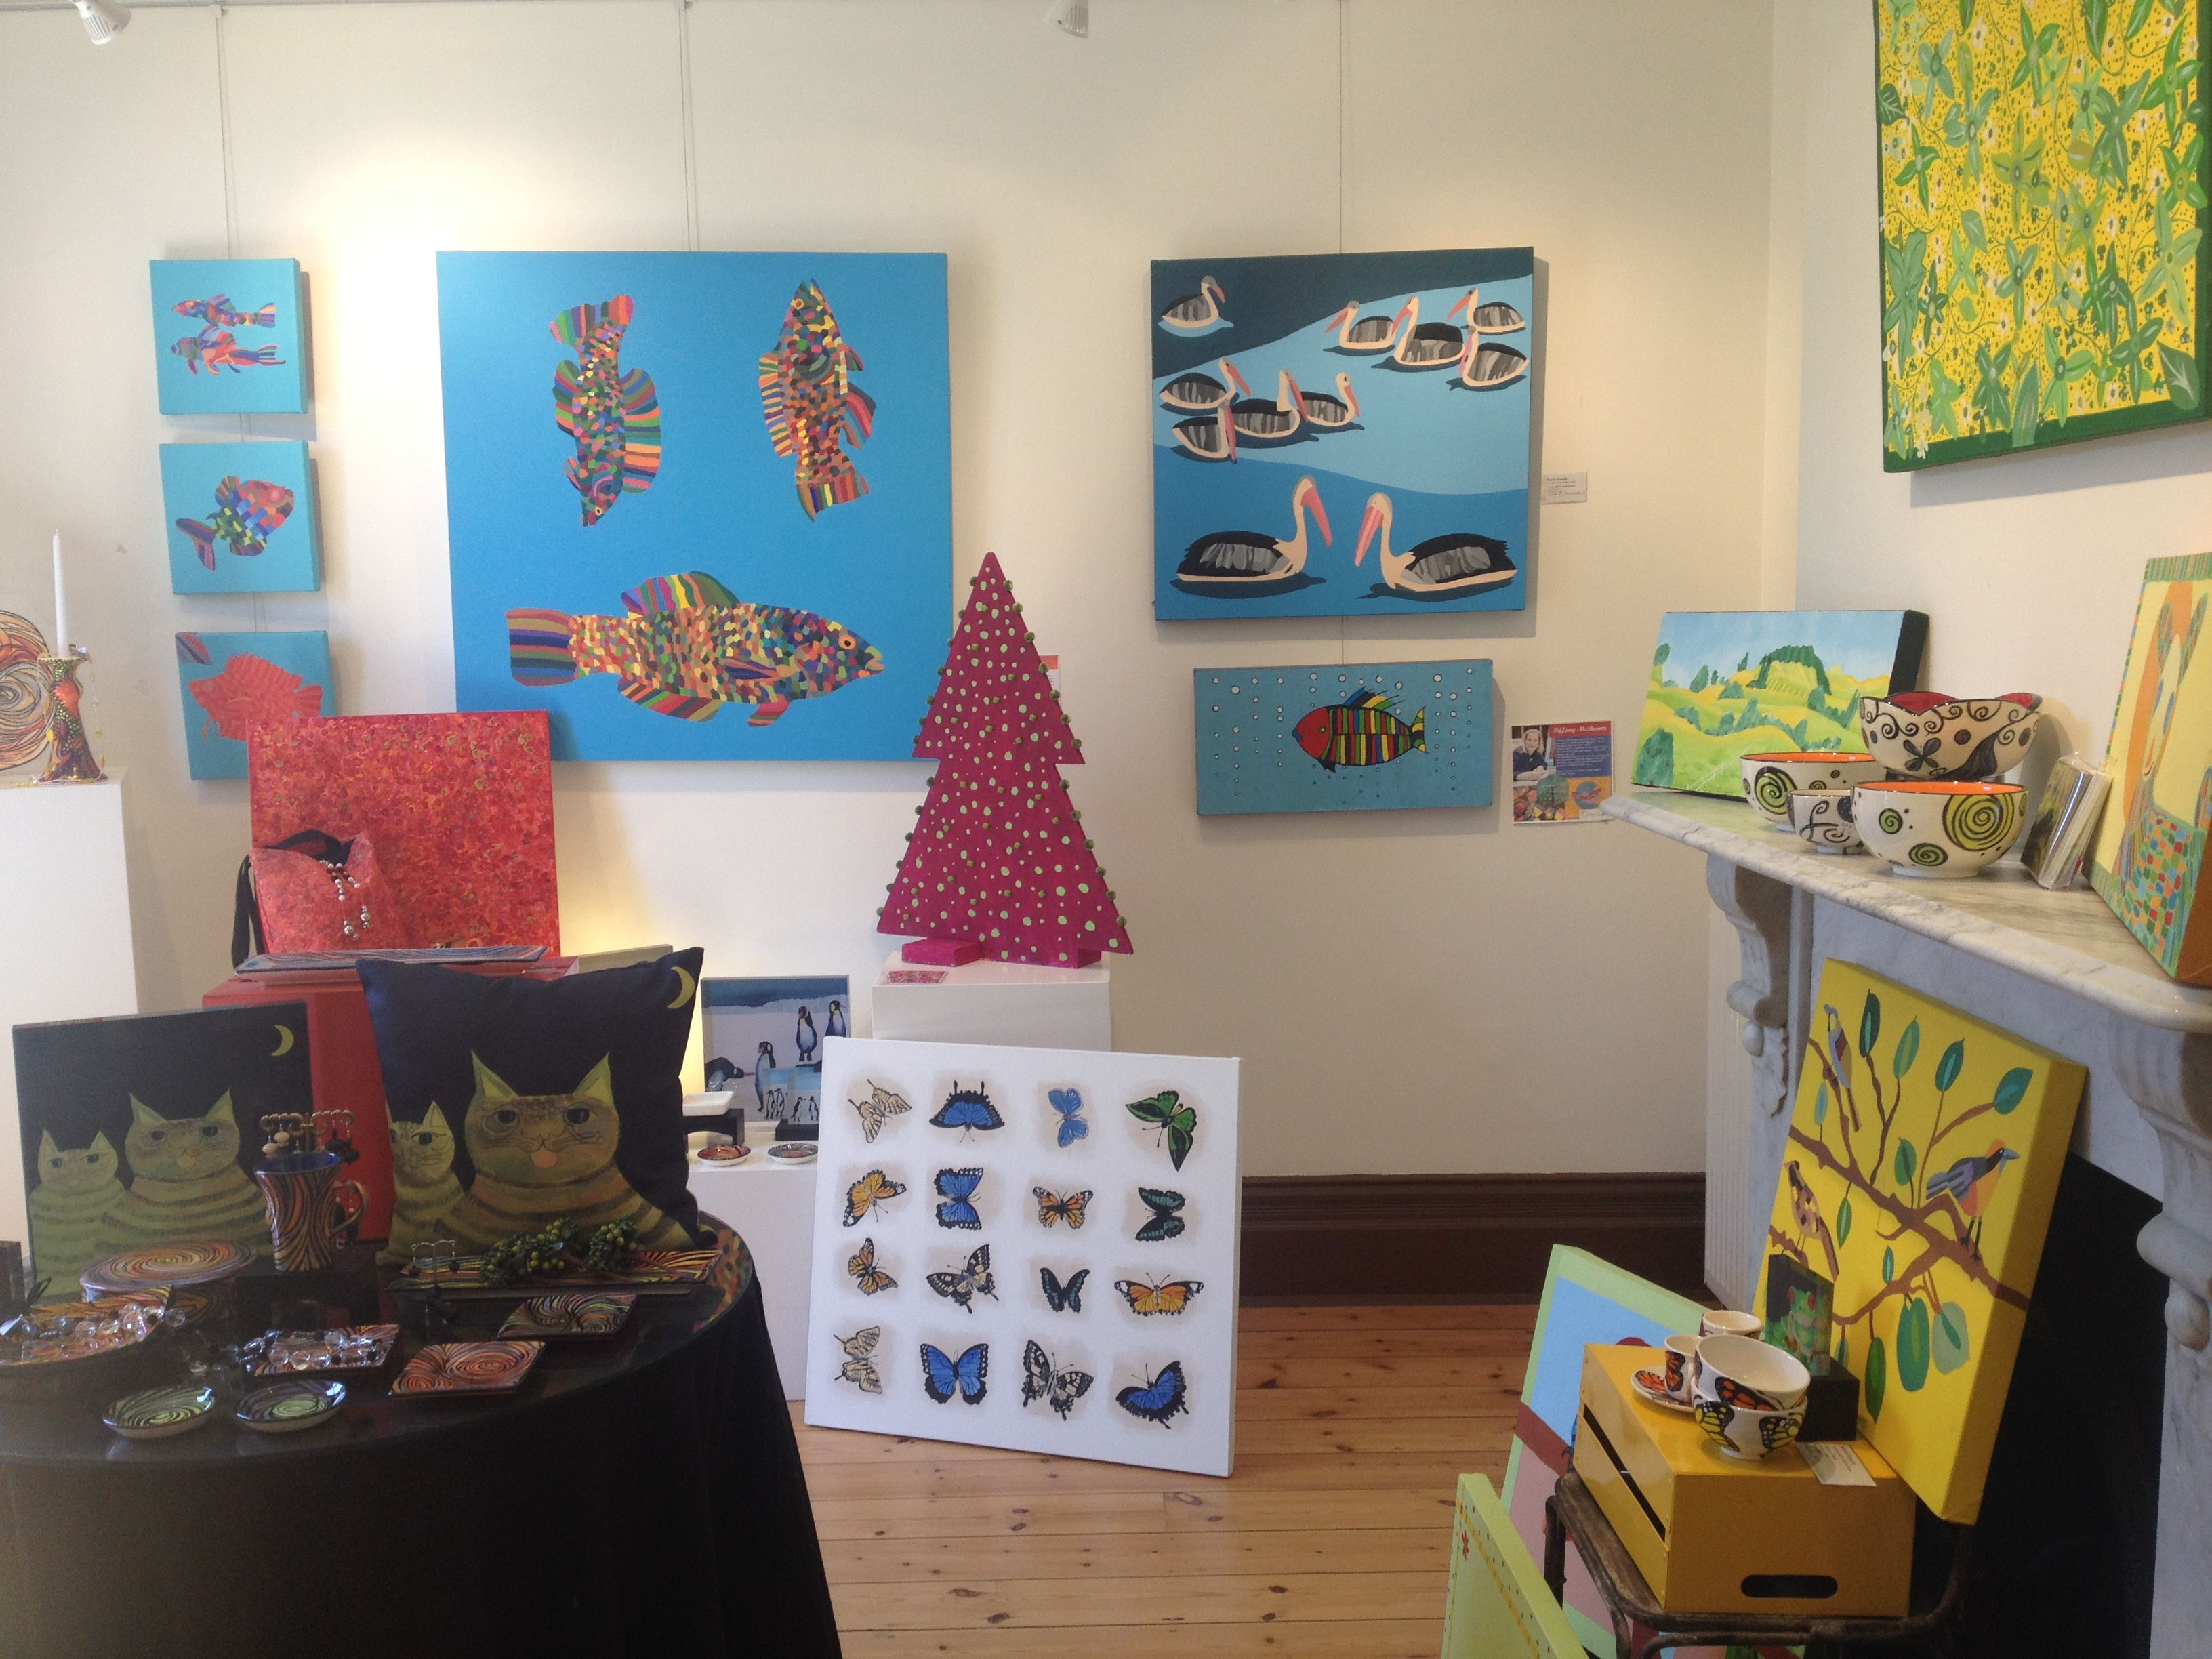 Getting ready for Christmas at QArt Gallery!